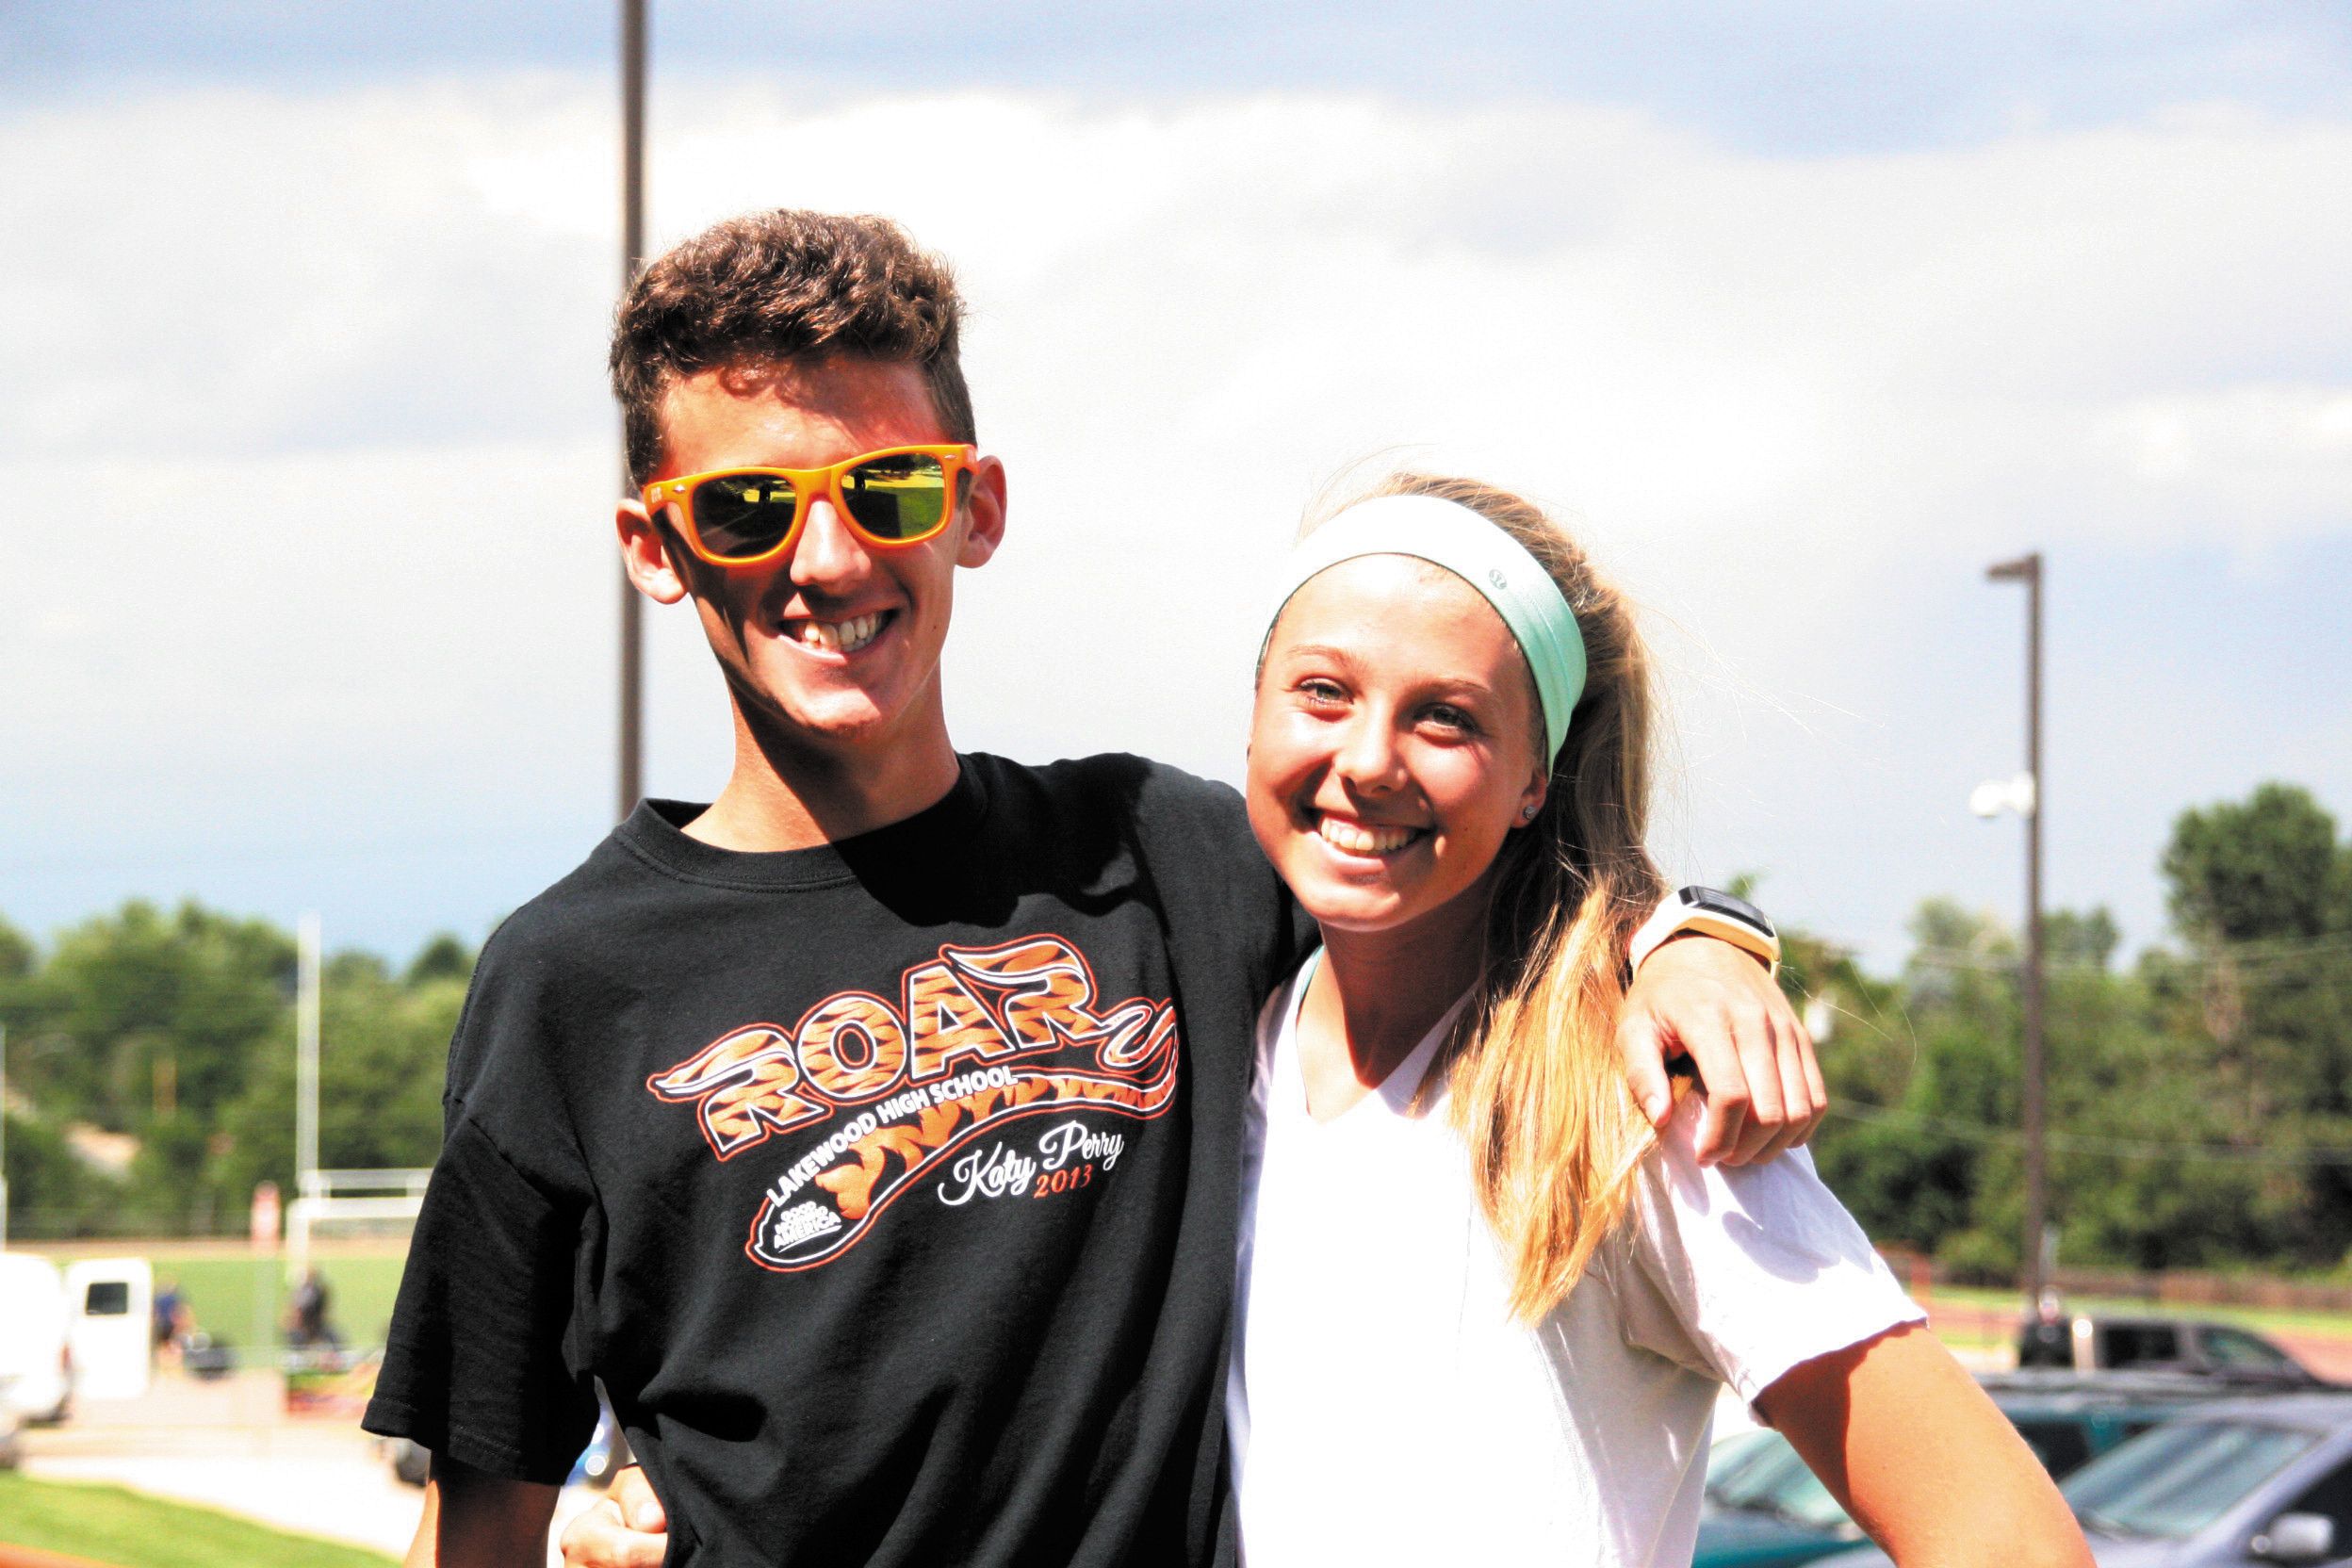 Lakewood cross-country teams are both looking good going into this season, especially the girls' team who returns the entire squad. Pictured here are team leaders Noah Riley and Olivia Hayden, who are also two of the best runners in Jeffco.